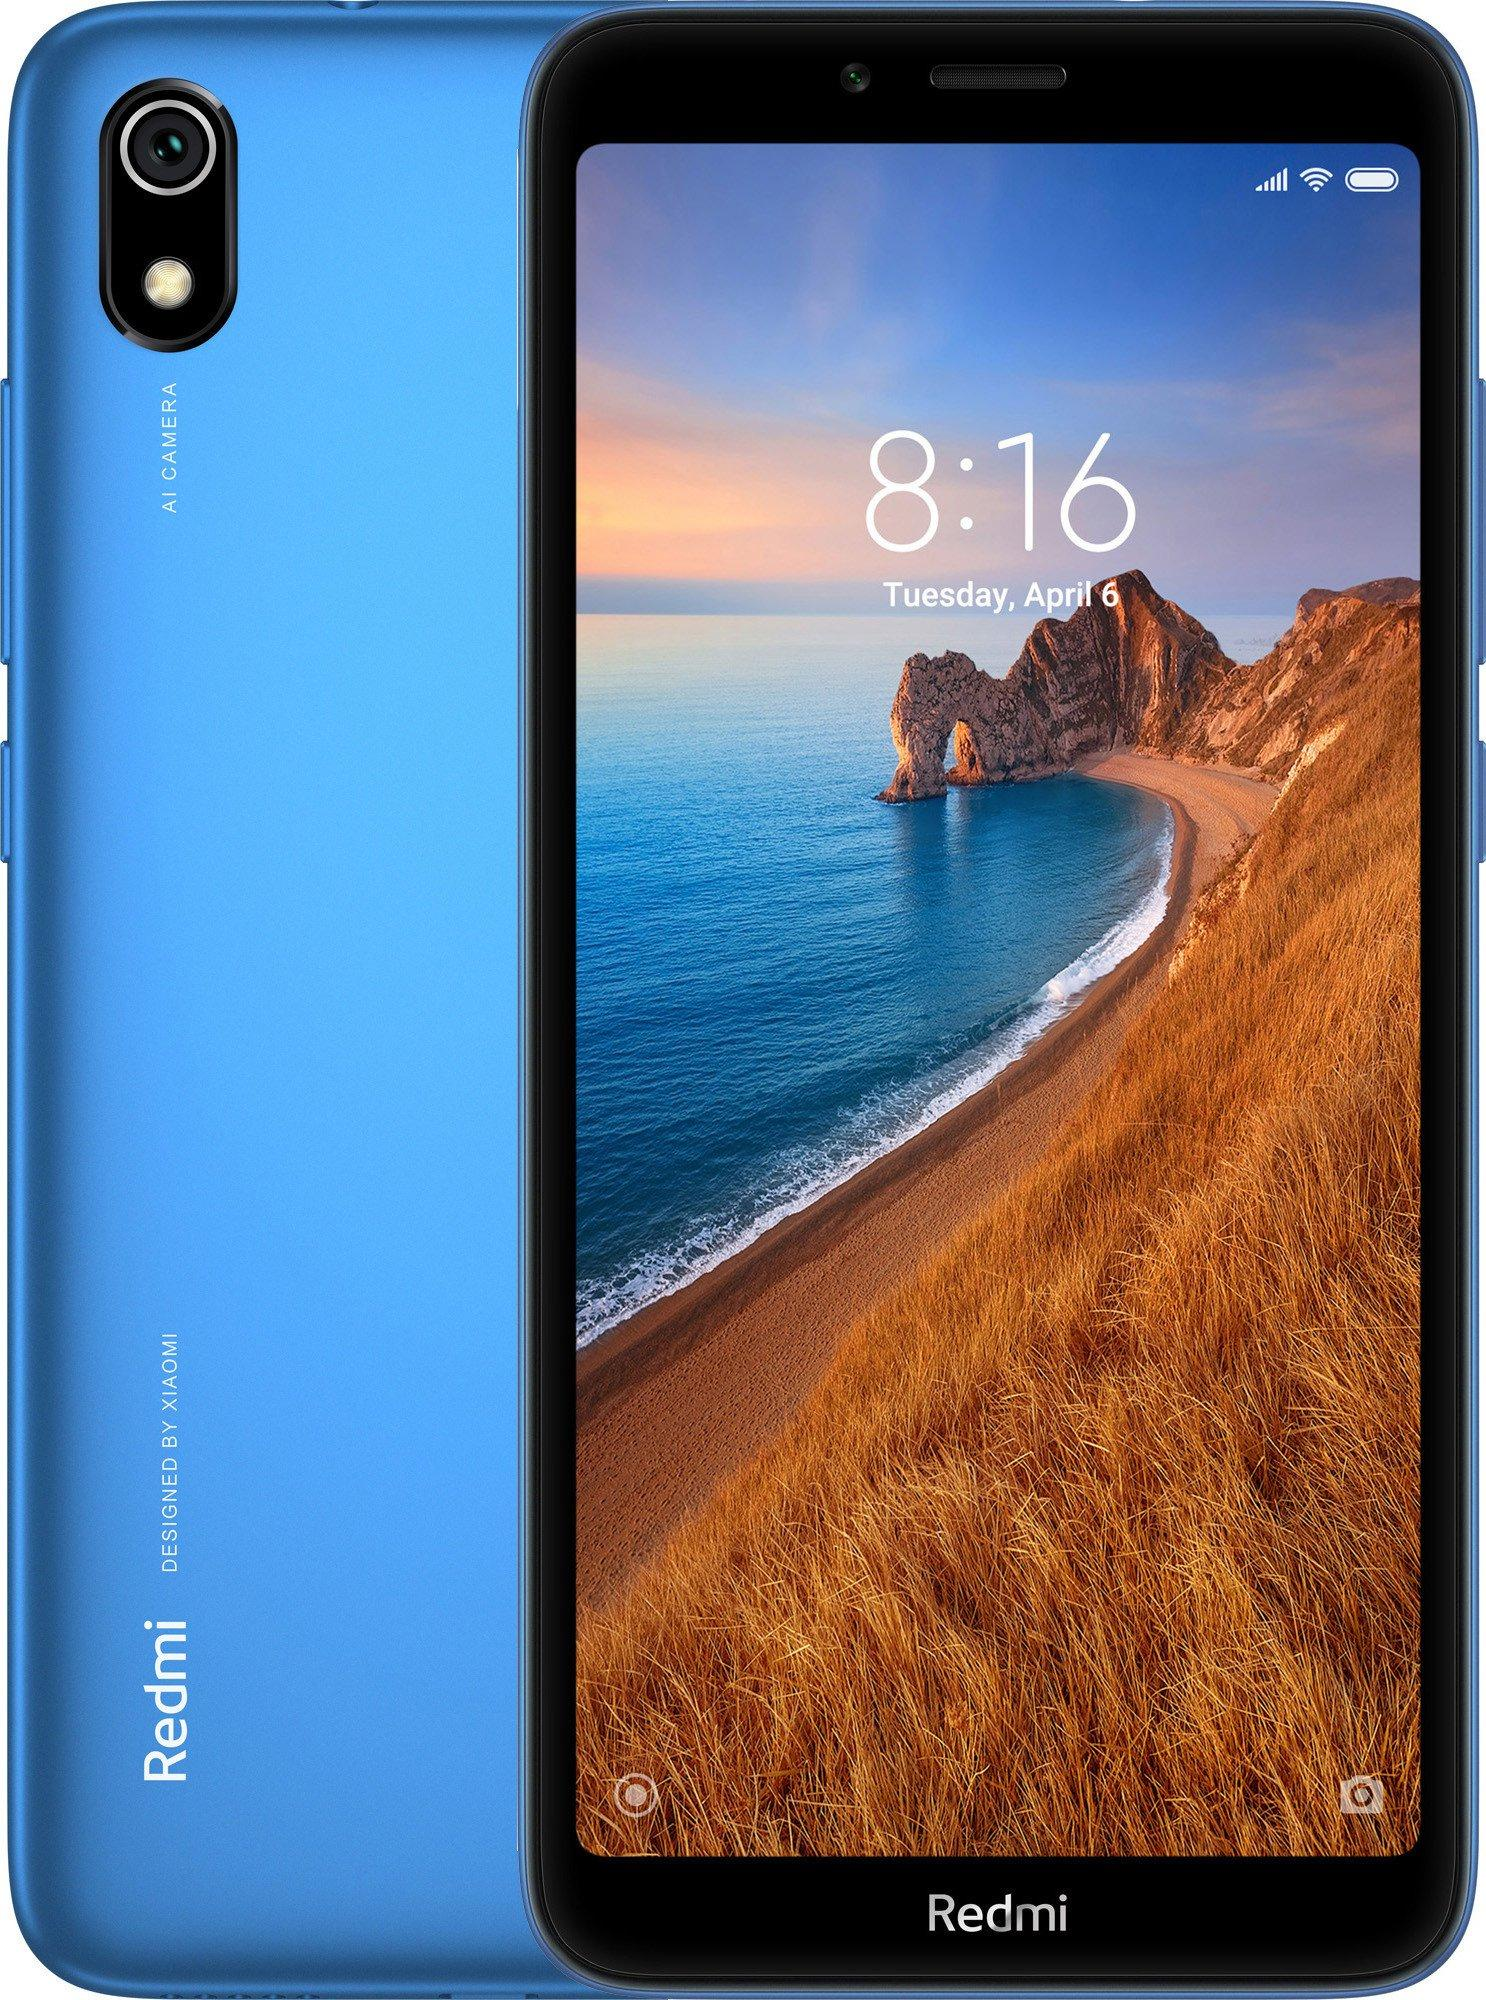 Смартфон Xiaomi Redmi 7A 2/16GB Blue 16 GB, синий смартфон xiaomi redmi 5 2 16 gb золотистый